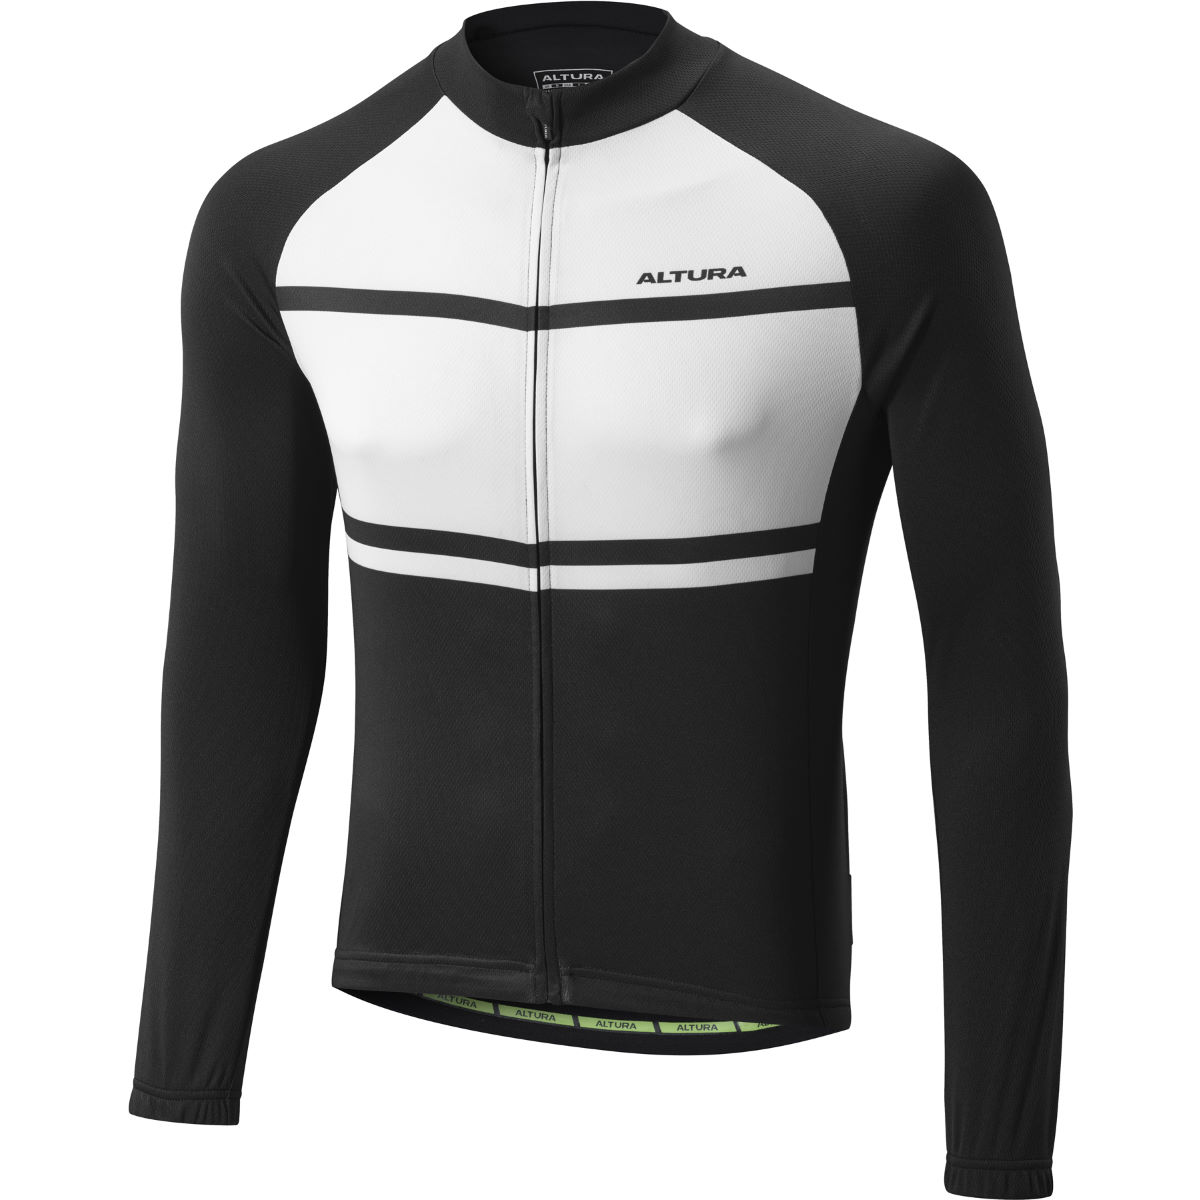 Maillot Altura Airstream 2 Summer (manches longues) - S Noir/Blanc Maillots vélo à manches longues